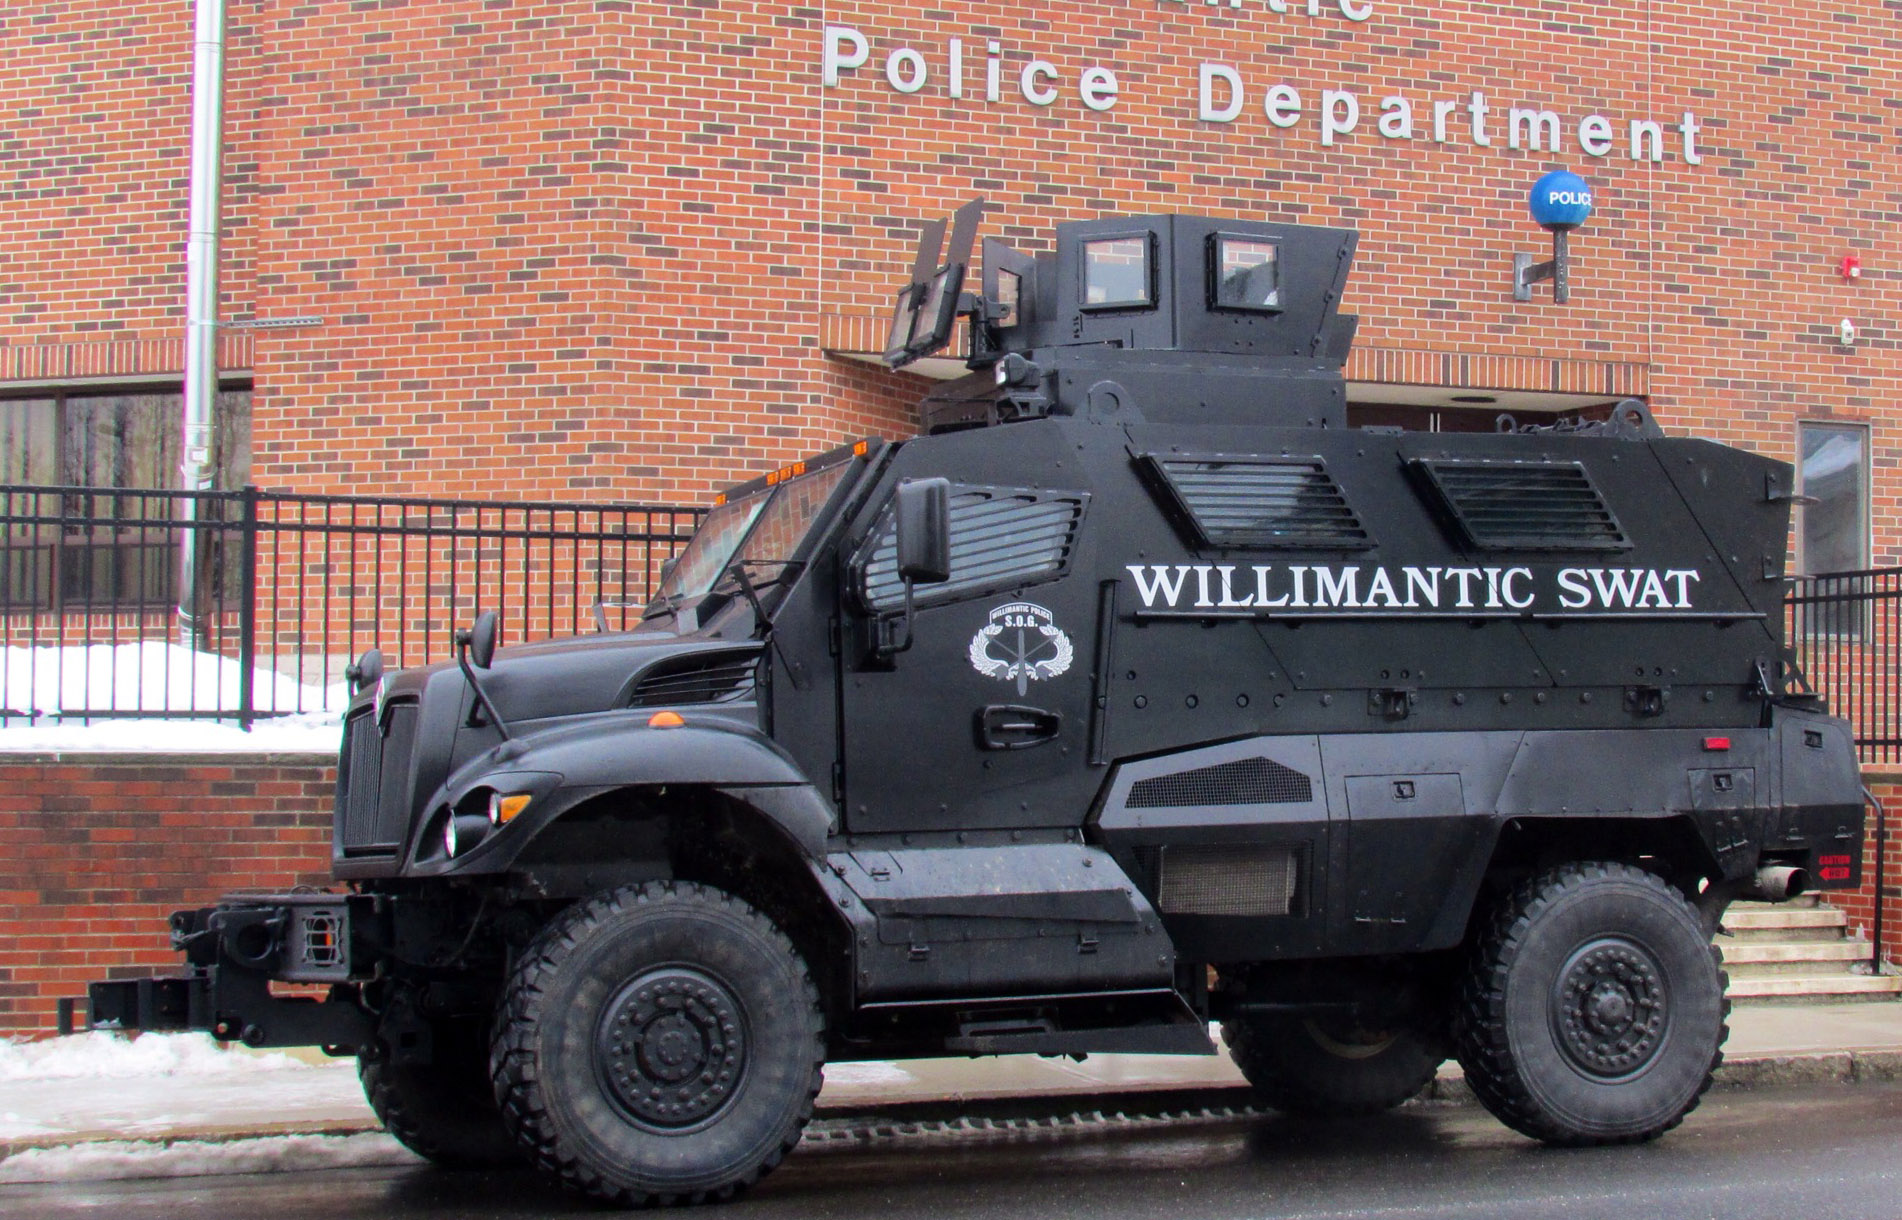 The Willimantic Police Department's SWAT vehicle given to the town by the Department of Defense.